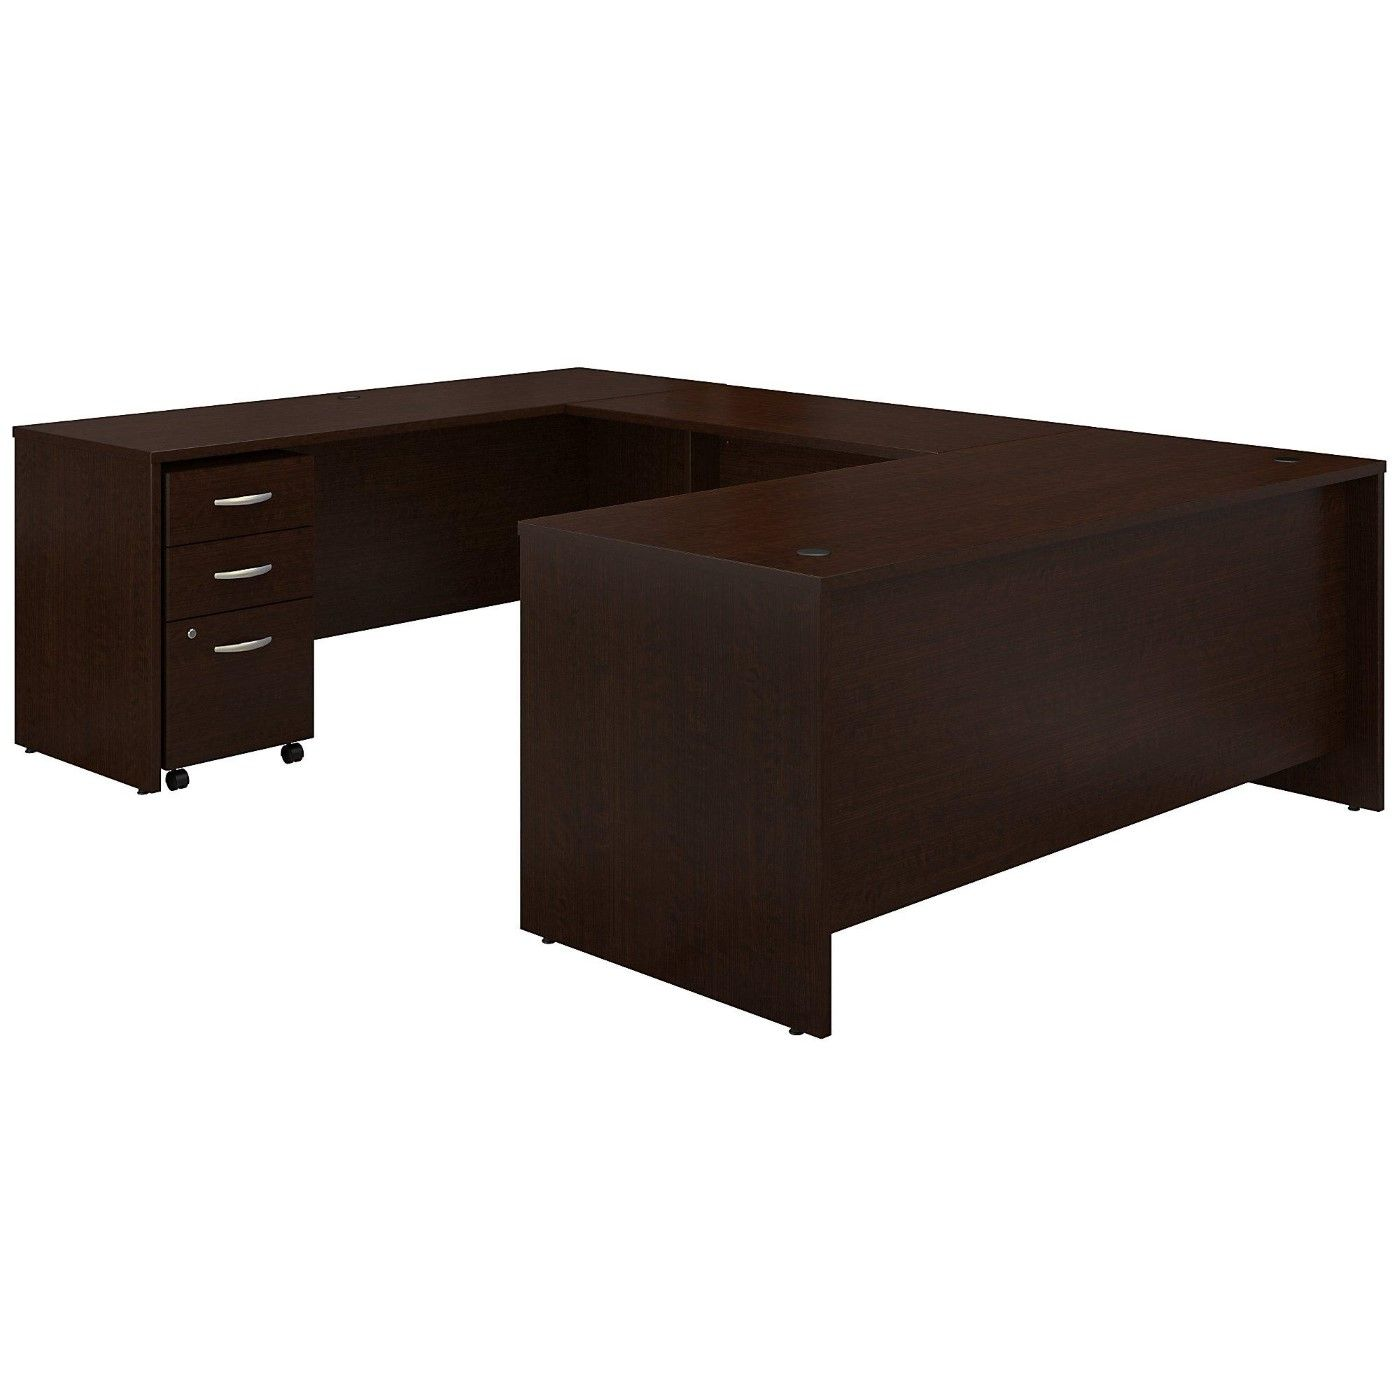 <font color=#c60><b>BUSH BUSINESS FURNITURE SERIES C 72W X 30D U SHAPED DESK WITH MOBILE FILE CABINET. FREE SHIPPING</font></b></font></b>